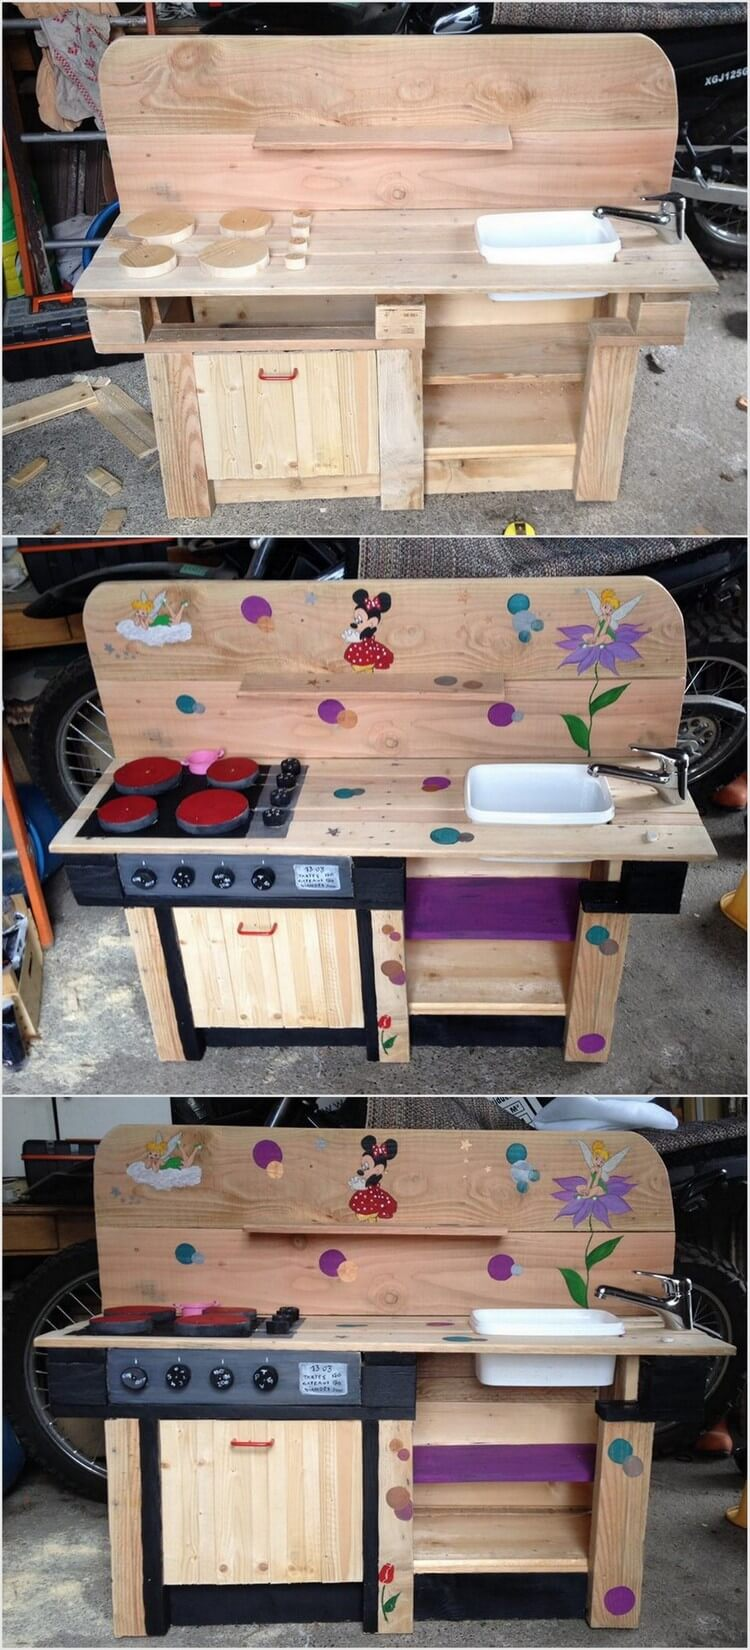 Some fascinating diy projects with old wood pallets for Kitchen ideas using pallets